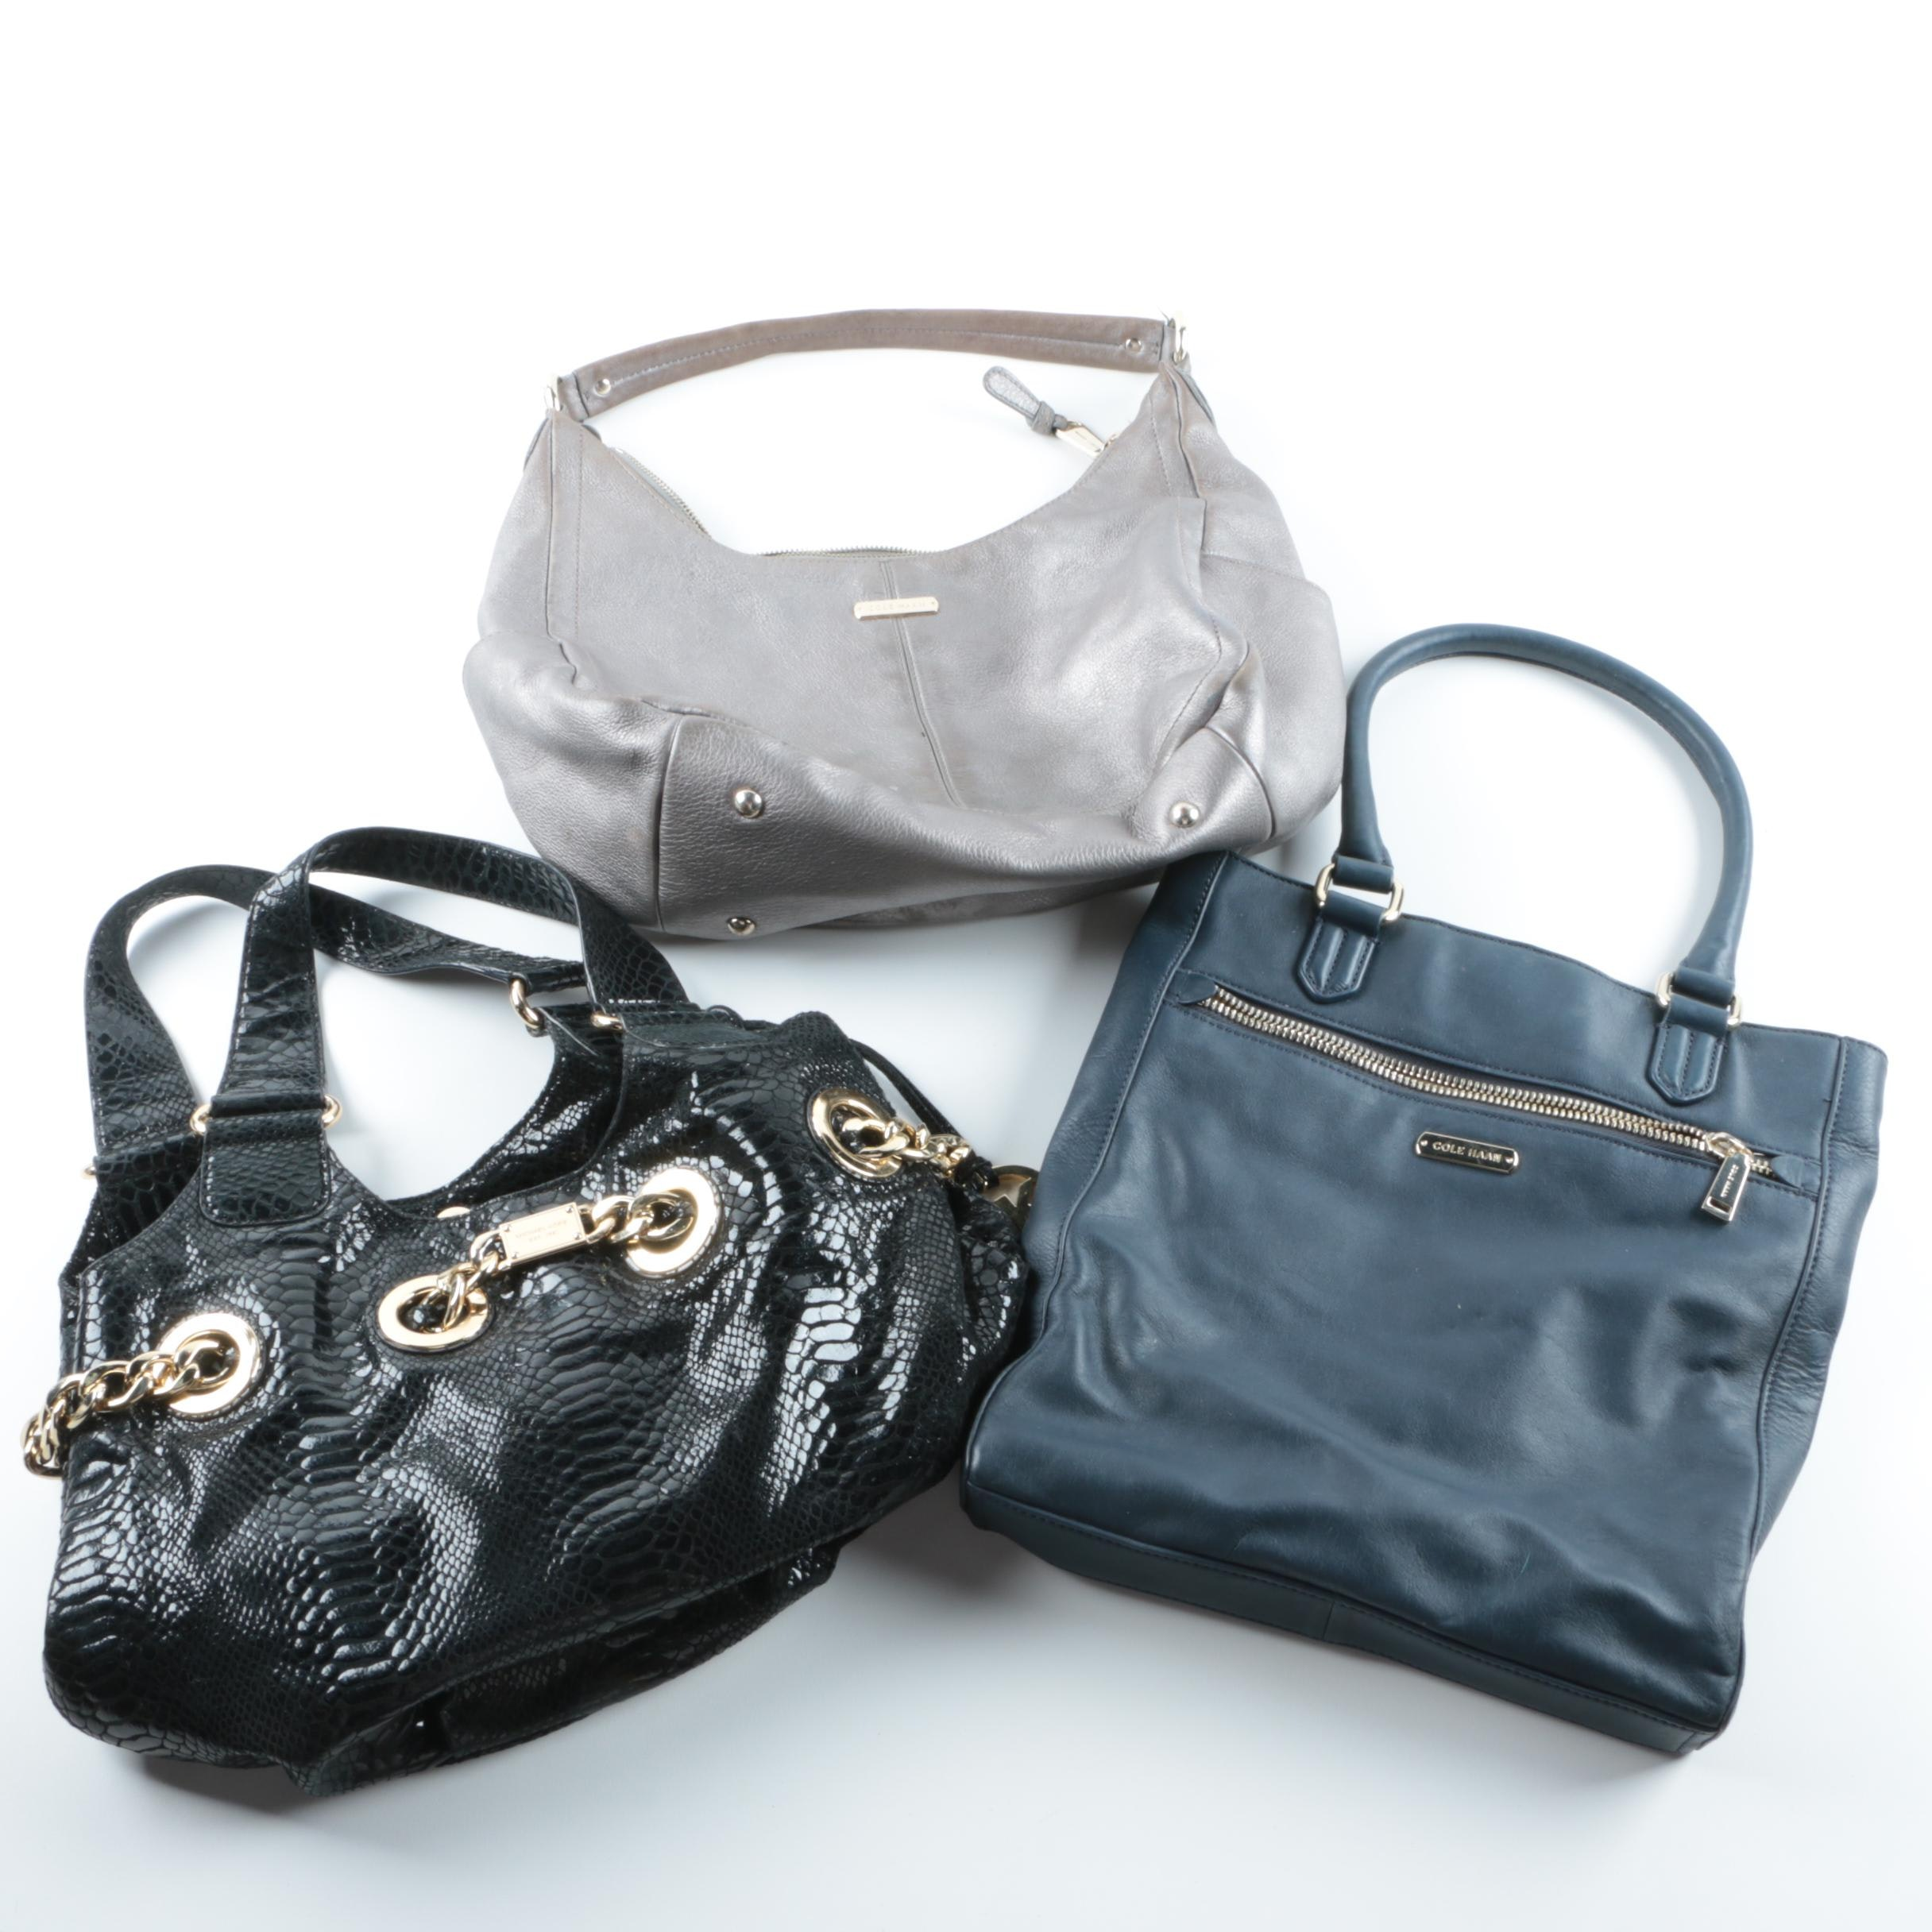 Leather Handbags Including Michael Kors and Cole Haan